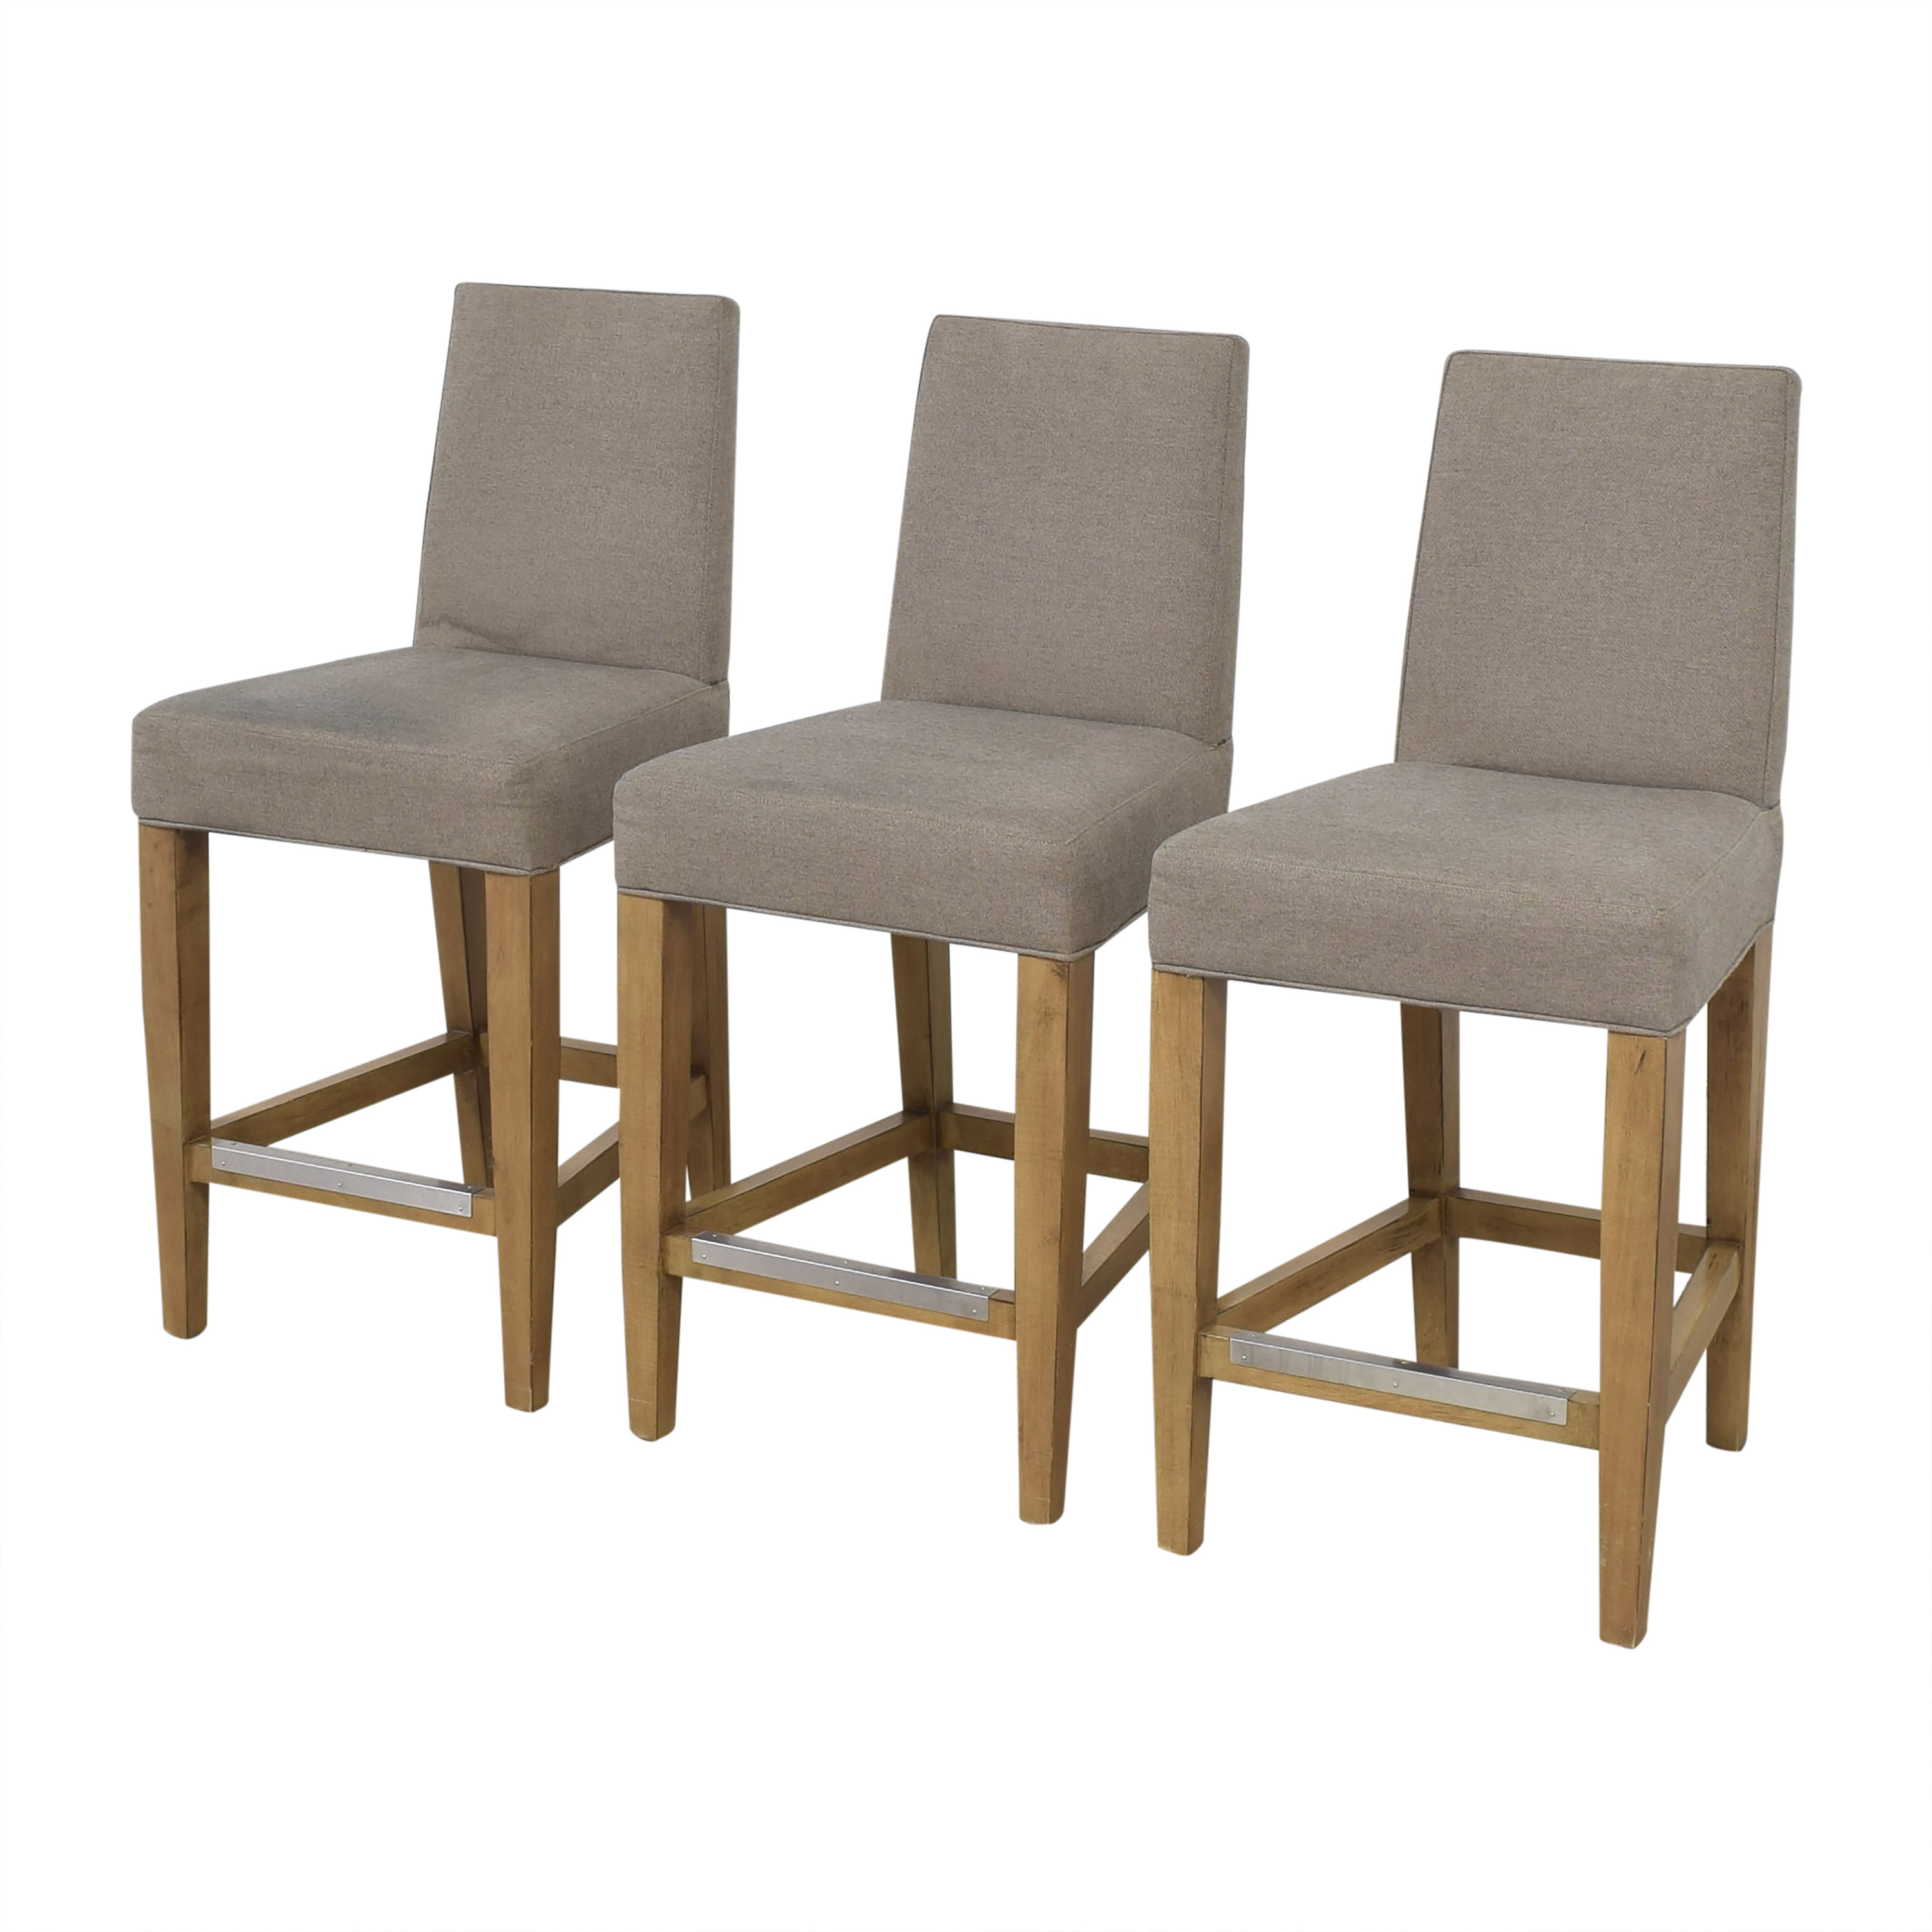 Lillian August Lillian August Couture Upholstered Counter Stools nj